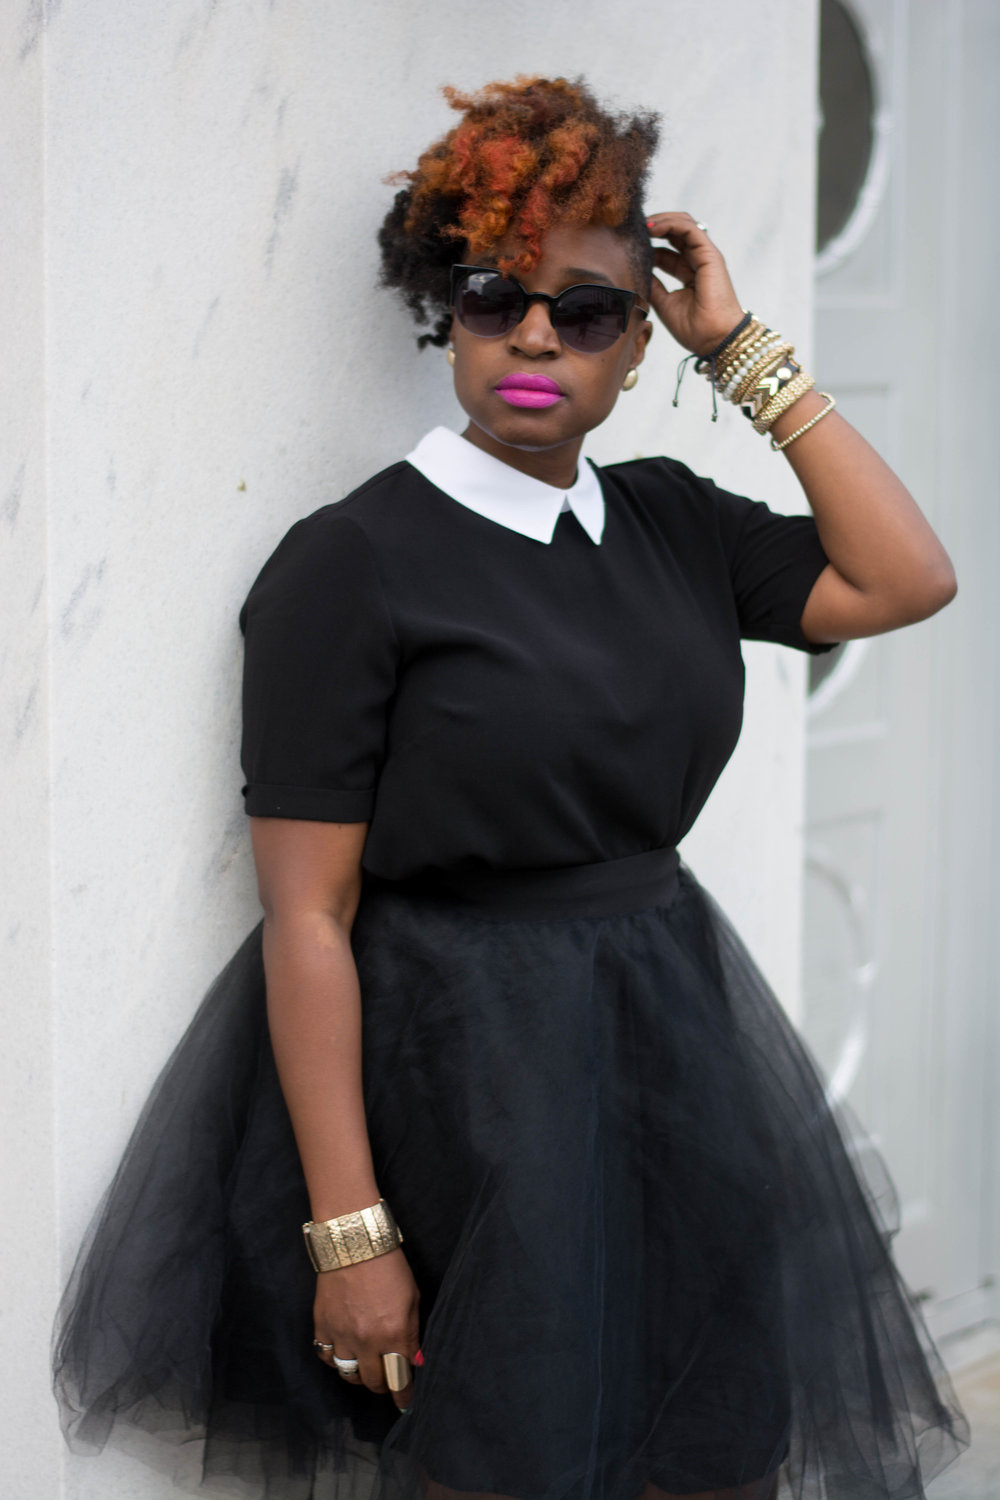 Atlanta Style Blogger, Melodie Stewart, The Style Klazit, Shoedazzle, Black Tulle Skirt, Atlanta Stylist